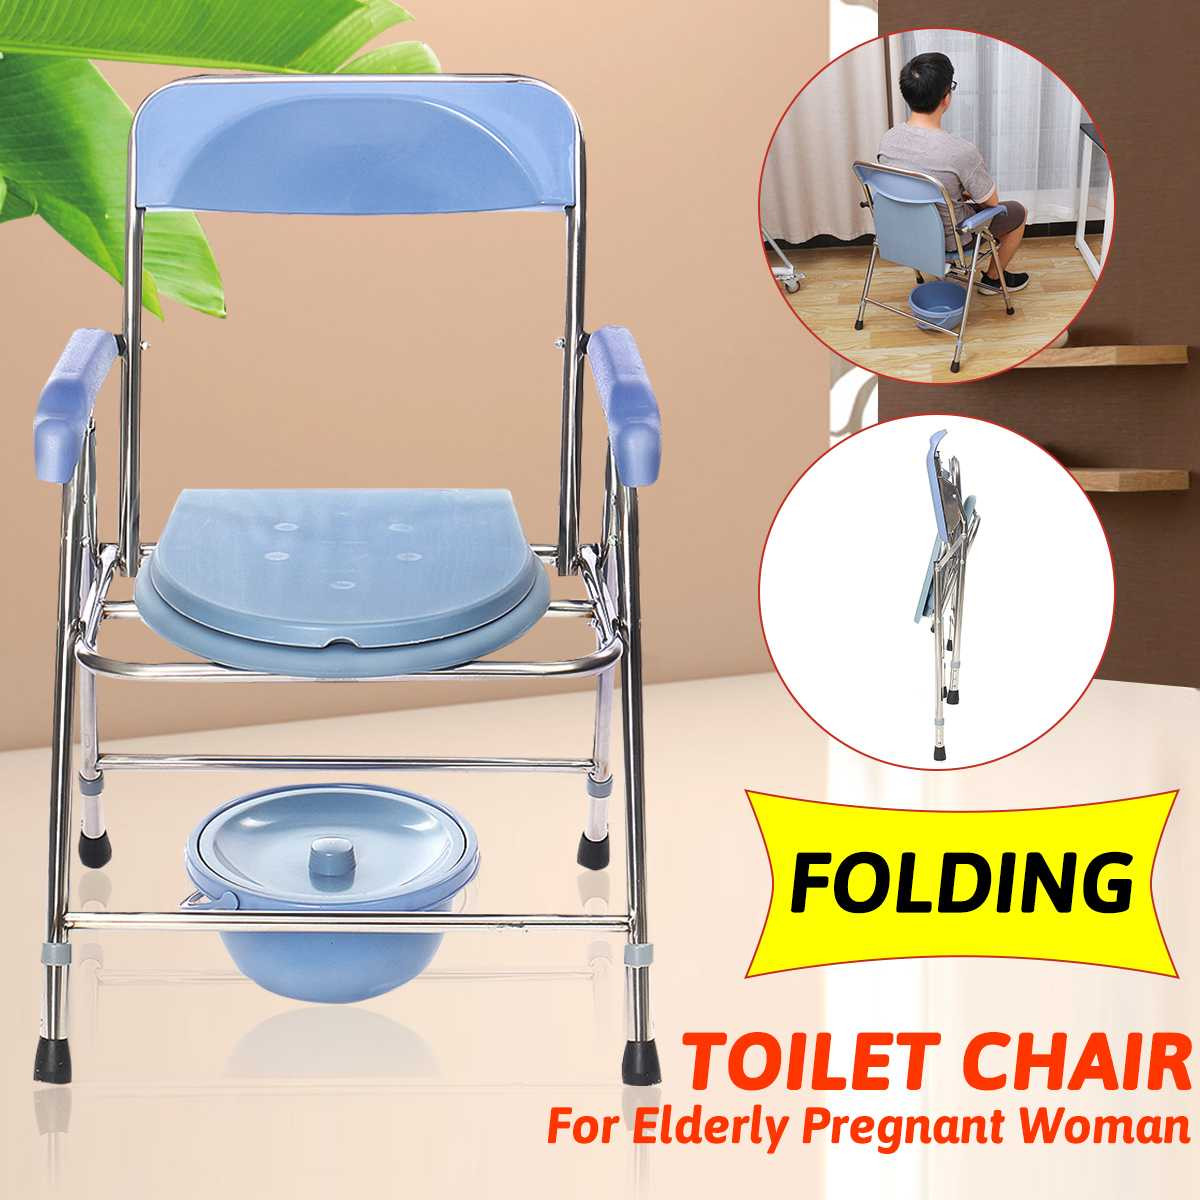 Folding Bedside Commode Chair Heavy Duty Commode Toilet Chair Toilet Safety Medical Commode Old Man Pregnant Woman Toilet Chair